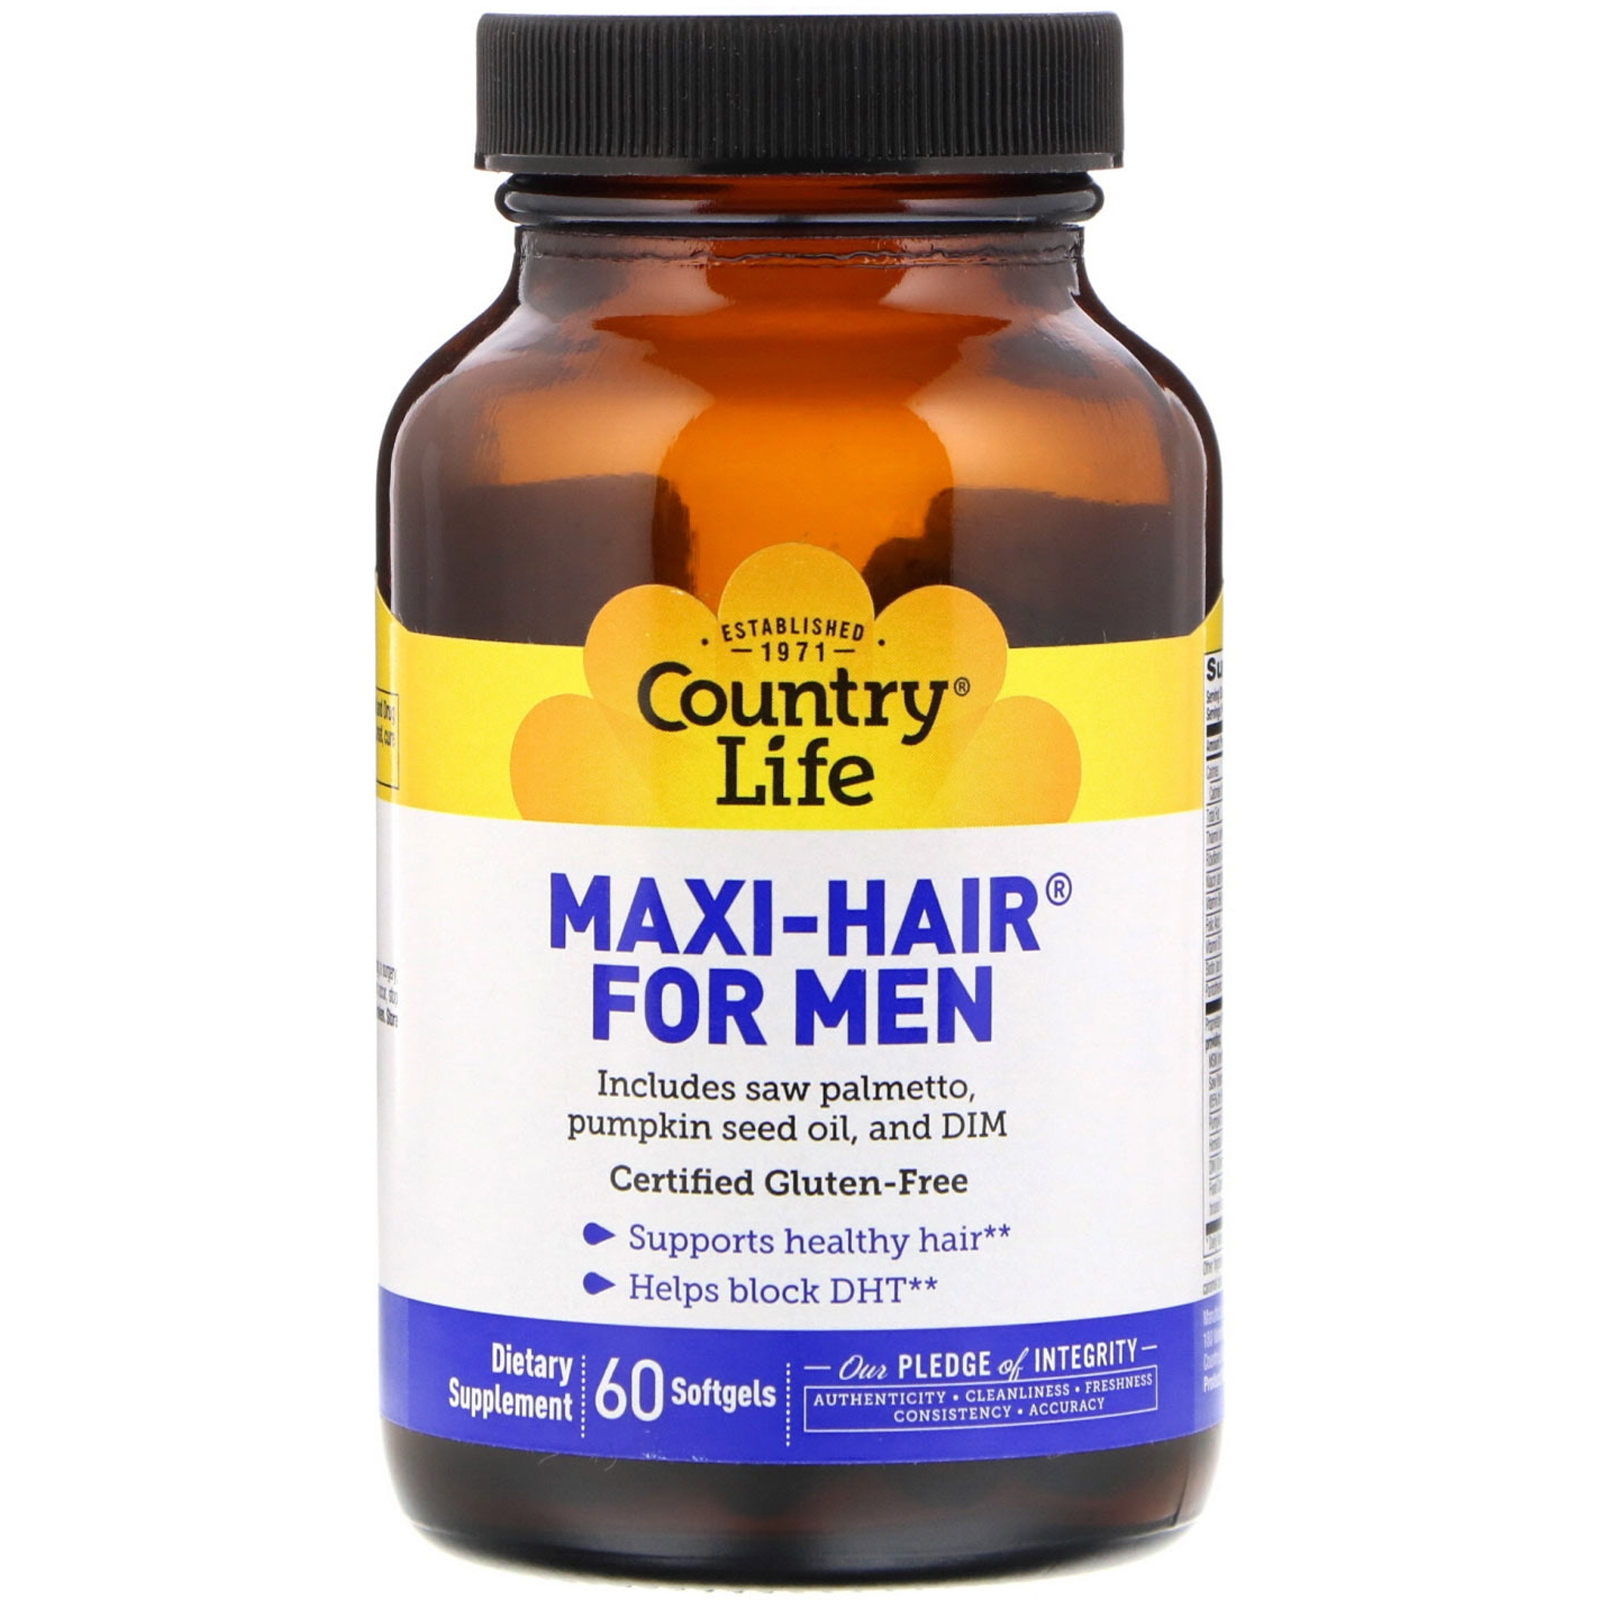 Image of Maxi Hair for Men (60 softgels) - Country Life 0015794050476